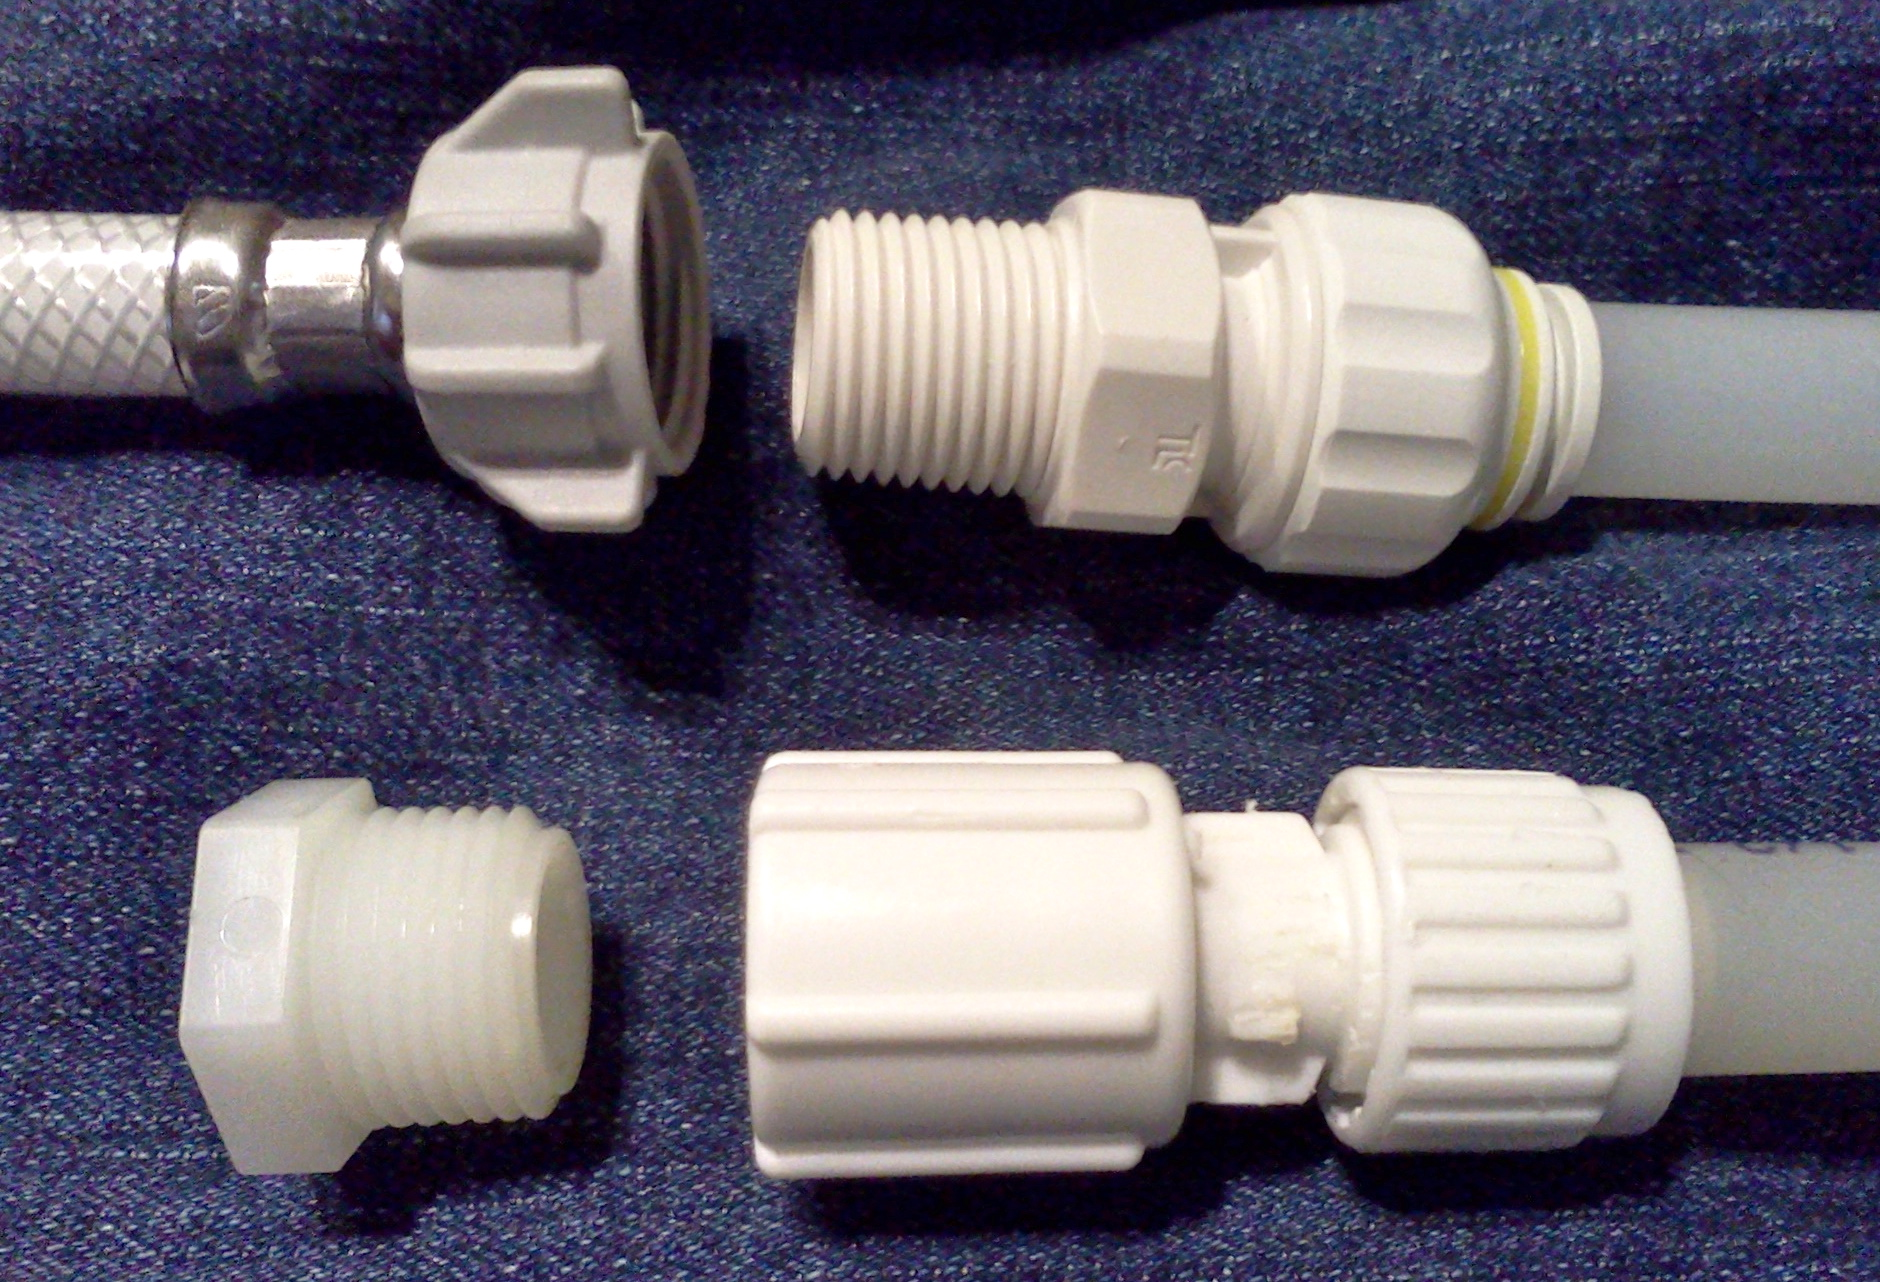 Pex Plumbing Adaptors Rv Tip Of The Day